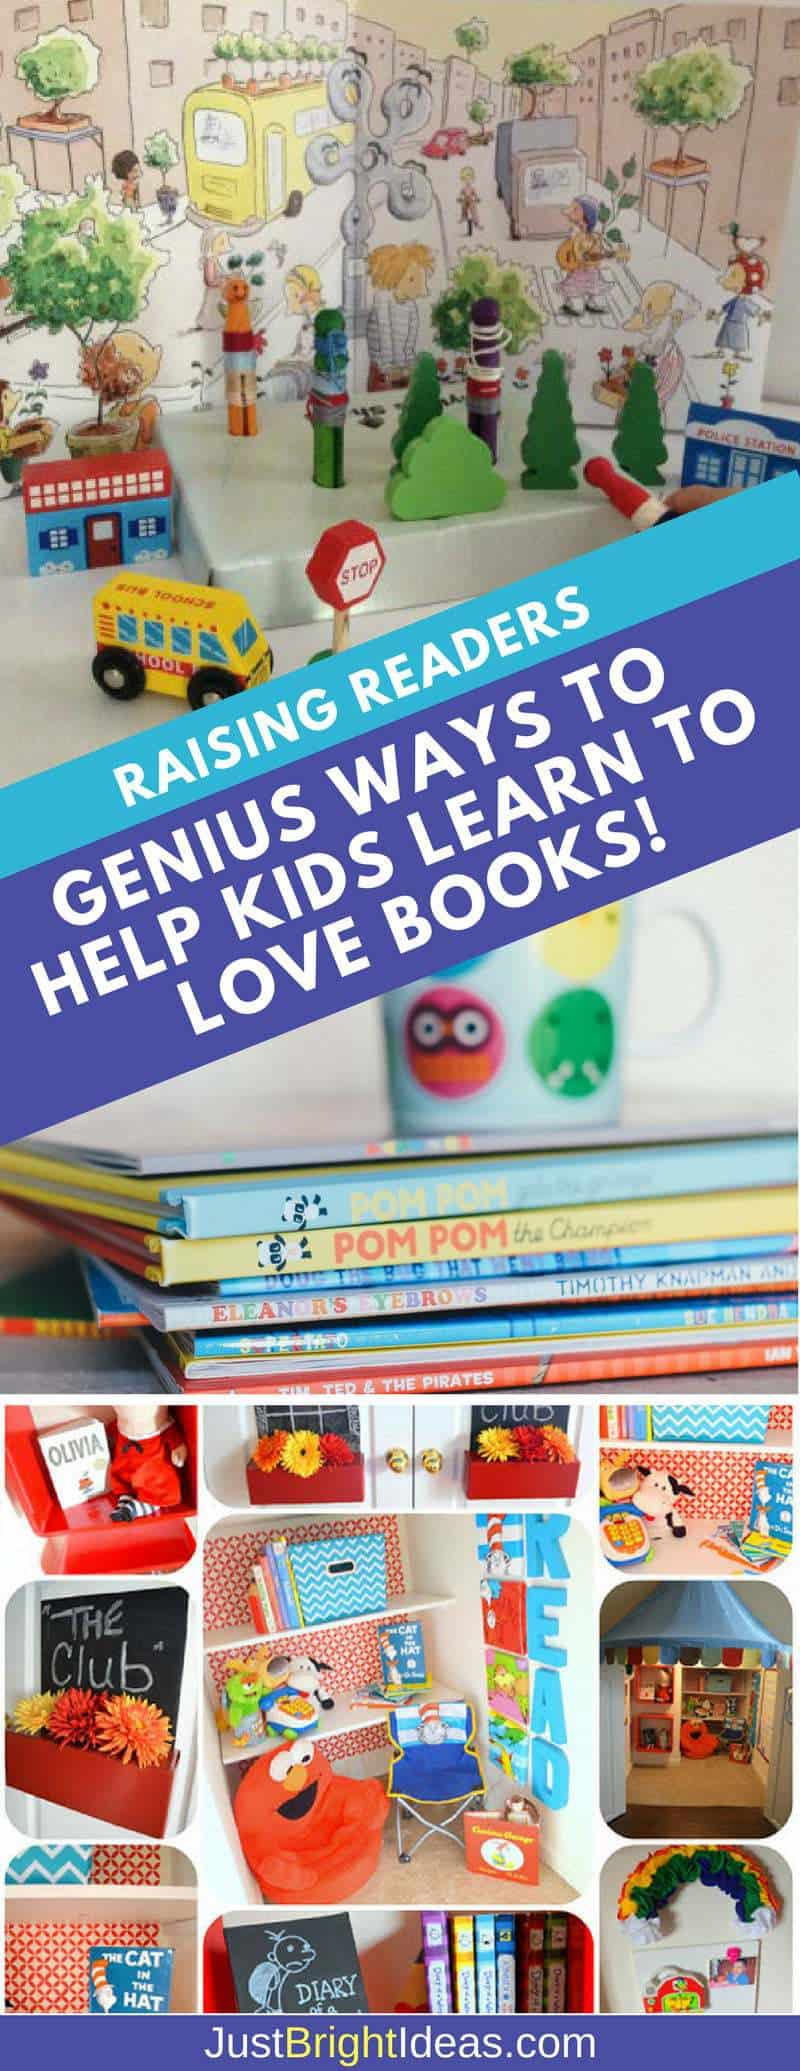 Help Kids Learn to Love Books